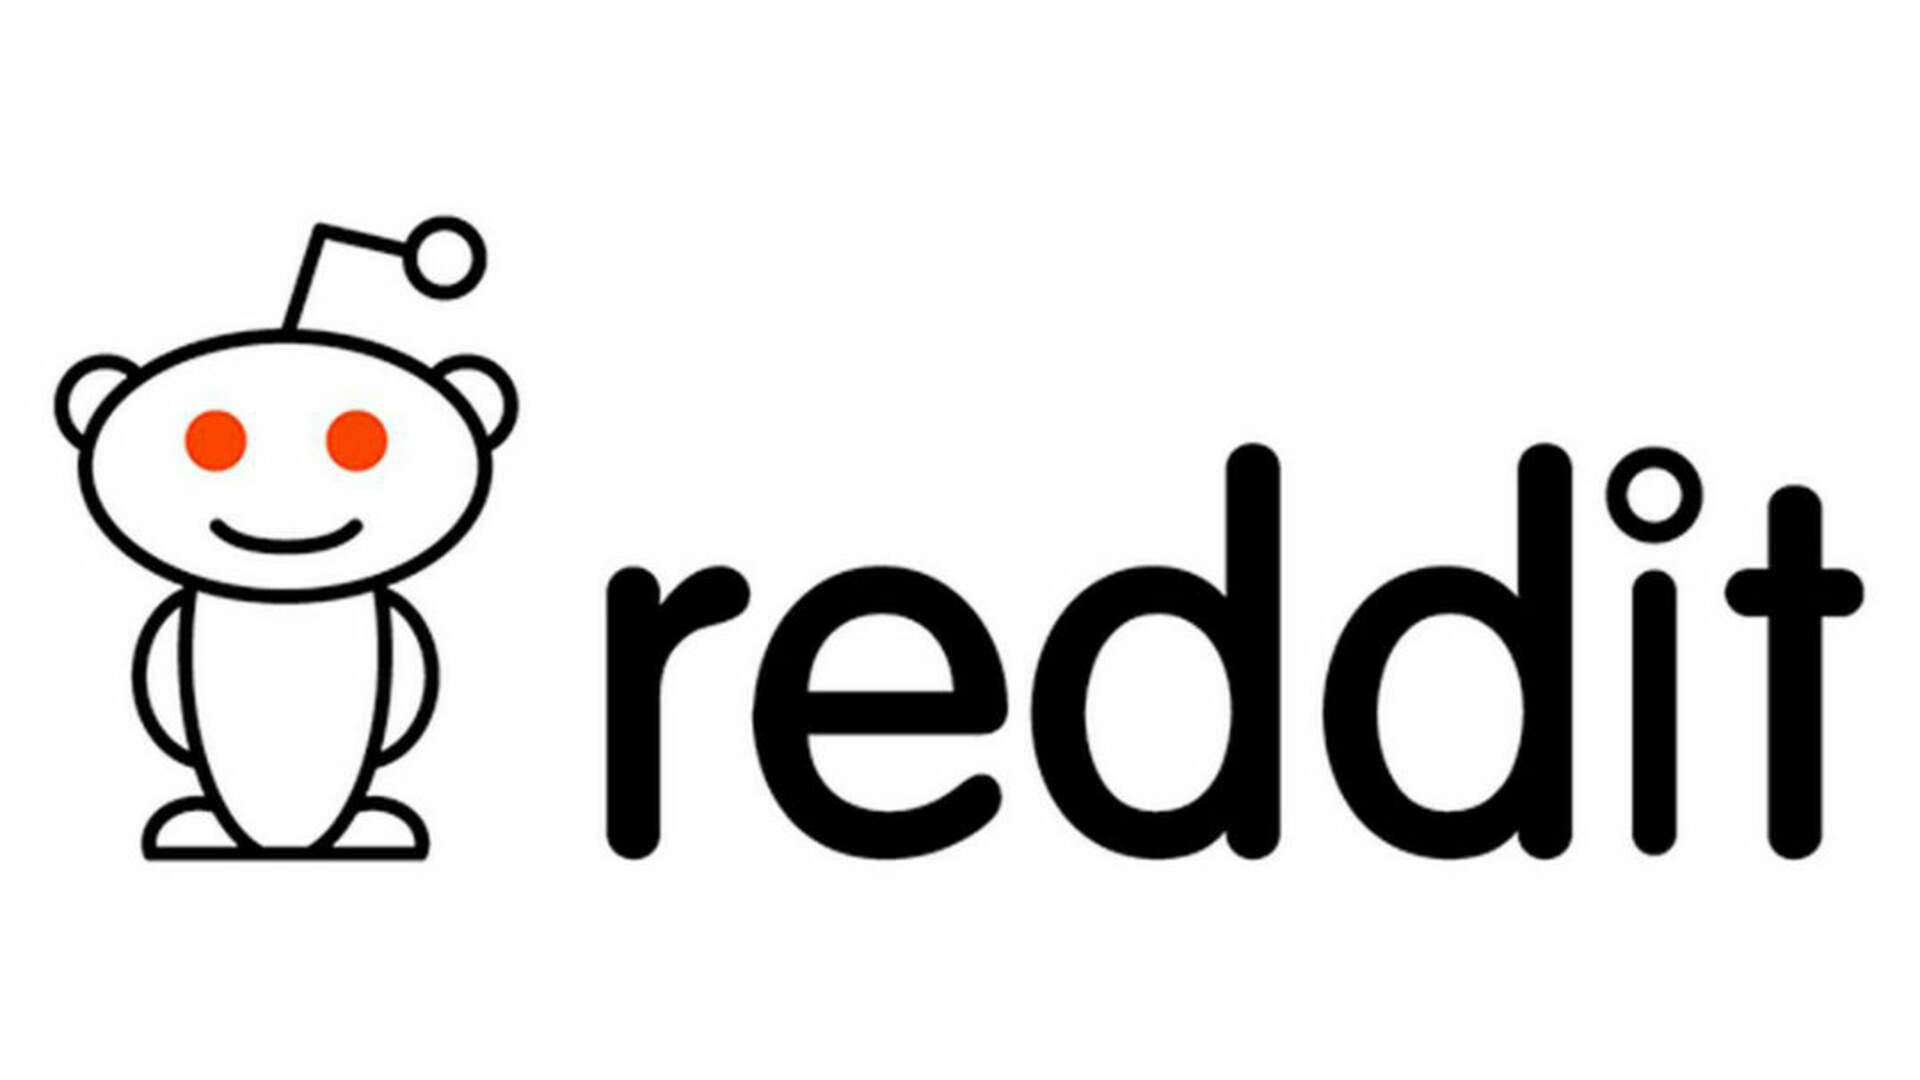 r/Games Closure on April Fool's Is No Joke as Subreddit Takes a Stand Against Discrimination